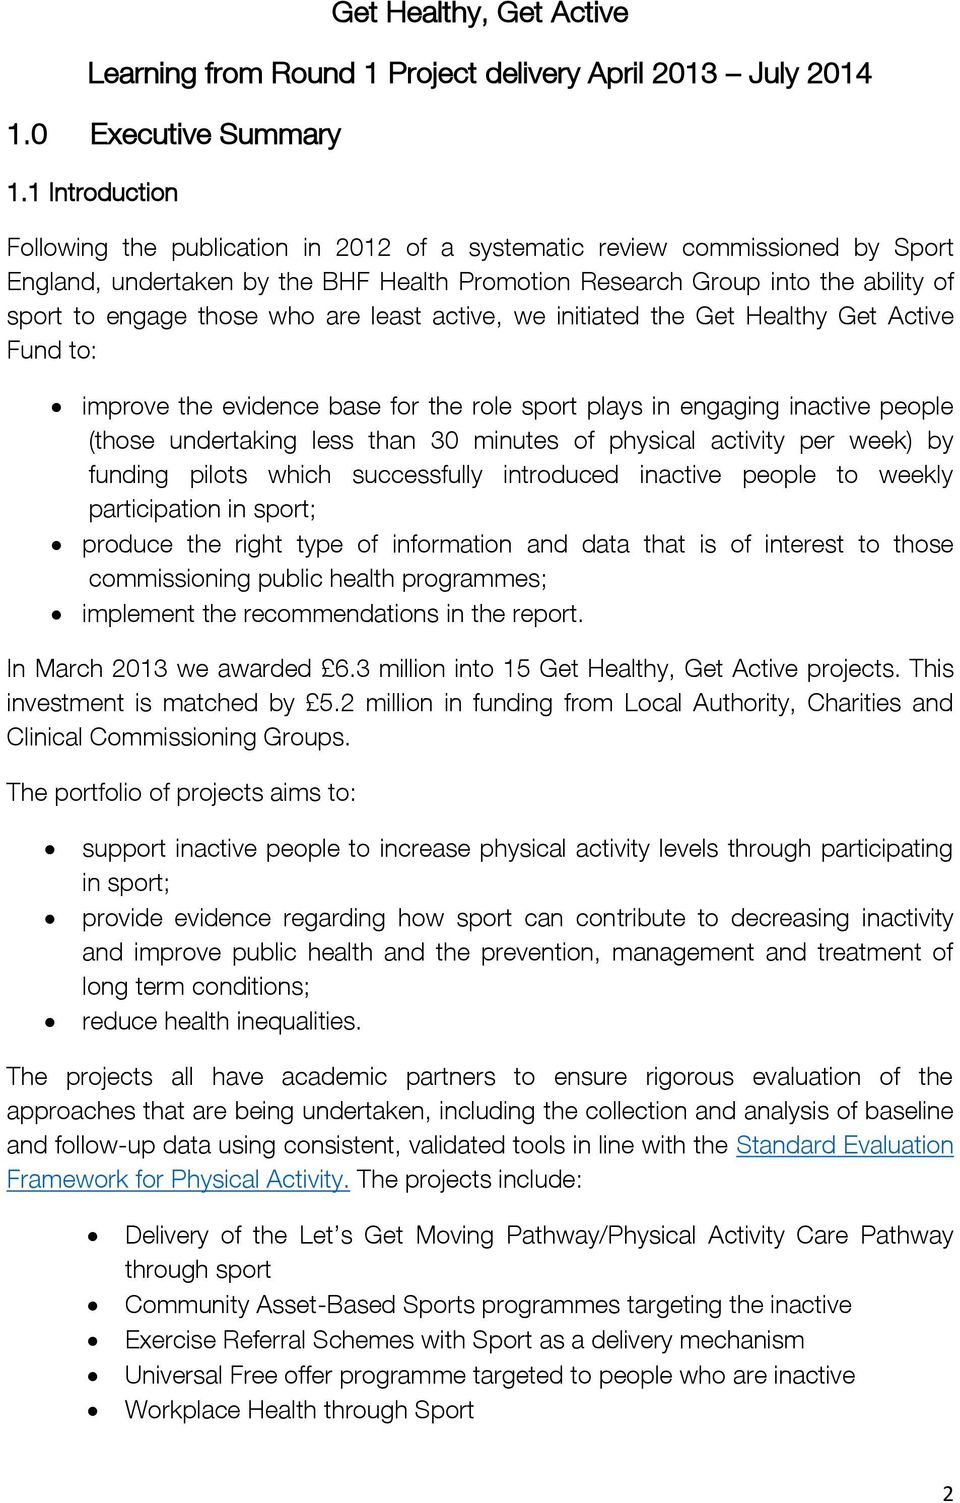 who are least active, we initiated the Get Healthy Get Active Fund to: improve the evidence base for the role sport plays in engaging inactive people (those undertaking less than 30 minutes of